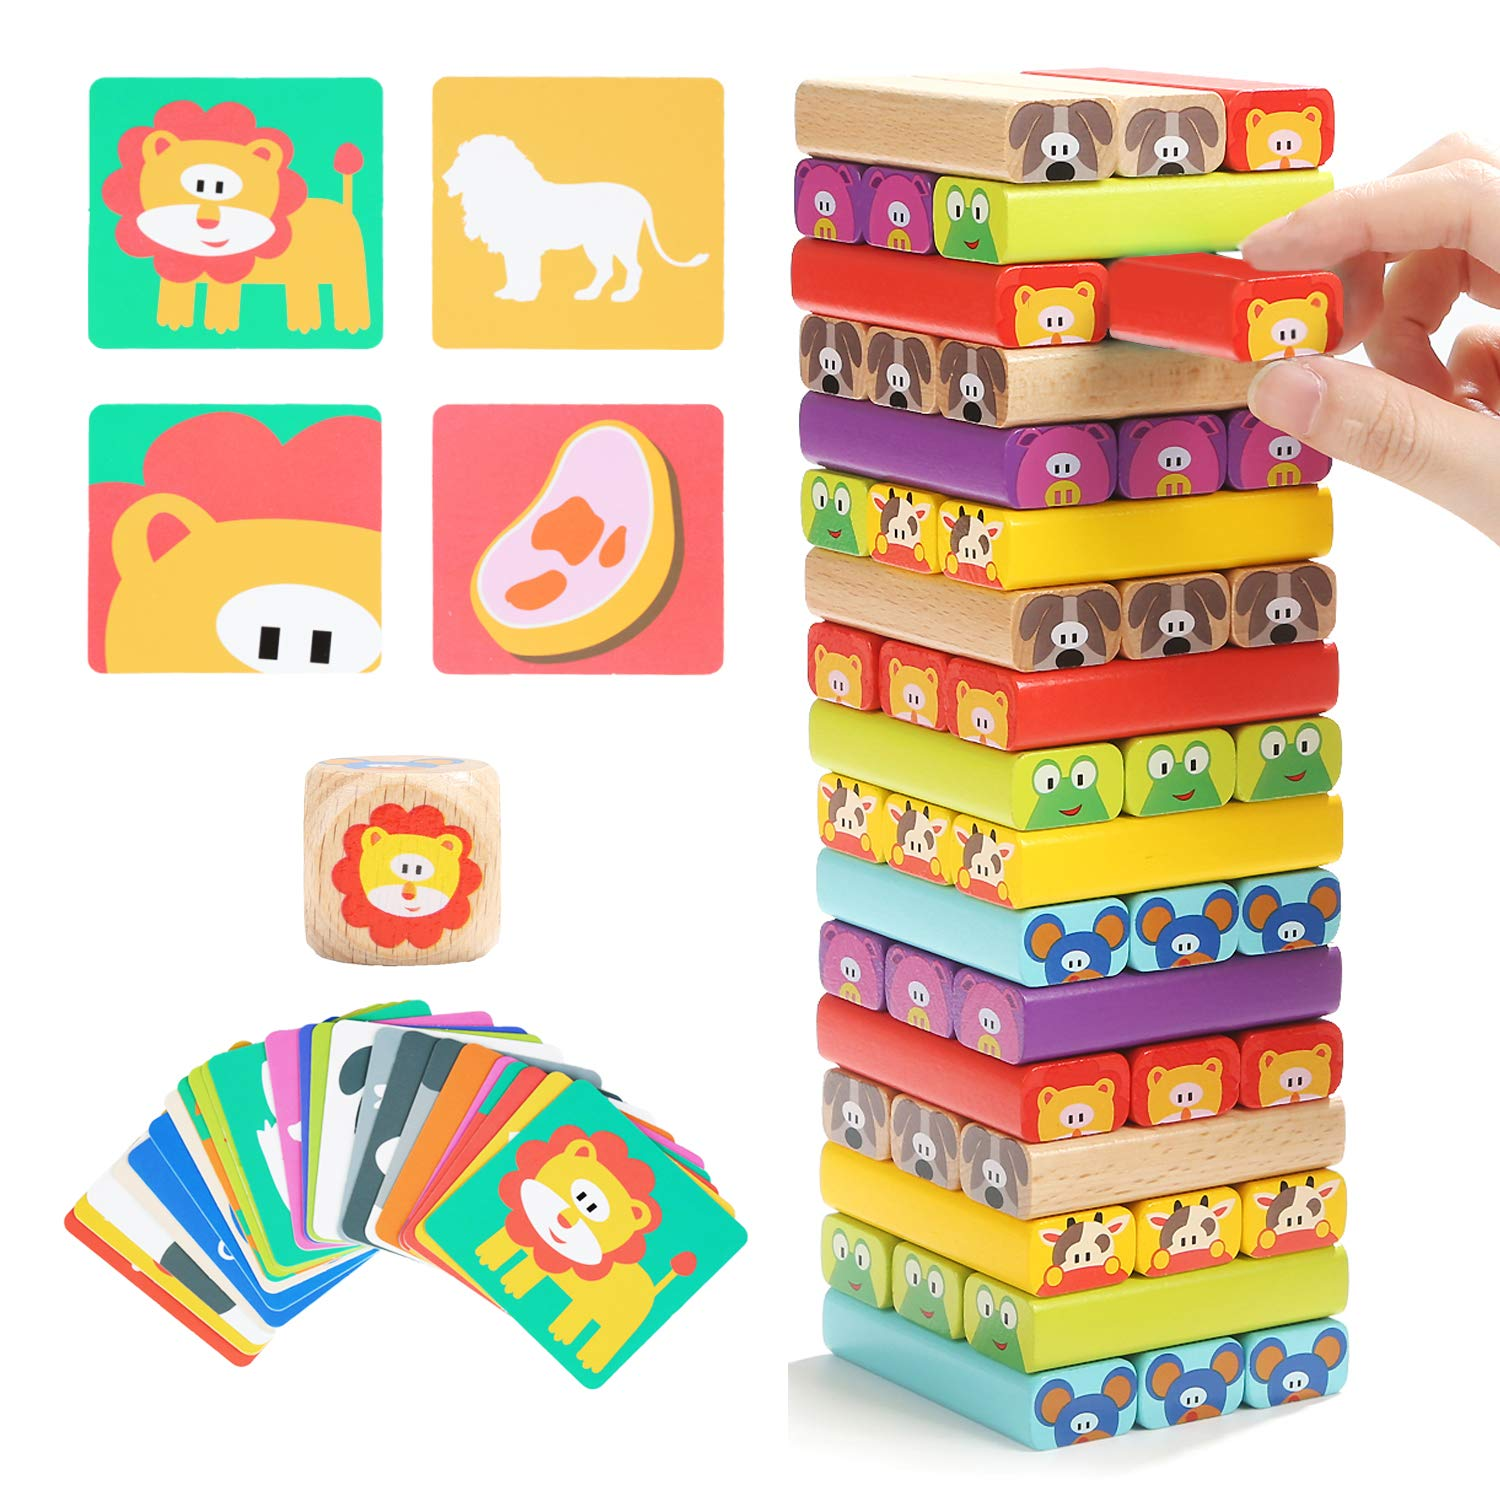 TOP BRIGHT Colored Wooden Blocks Stacking Board Games for Kids Ages 4-8 with 51 Pieces by TOP BRIGHT